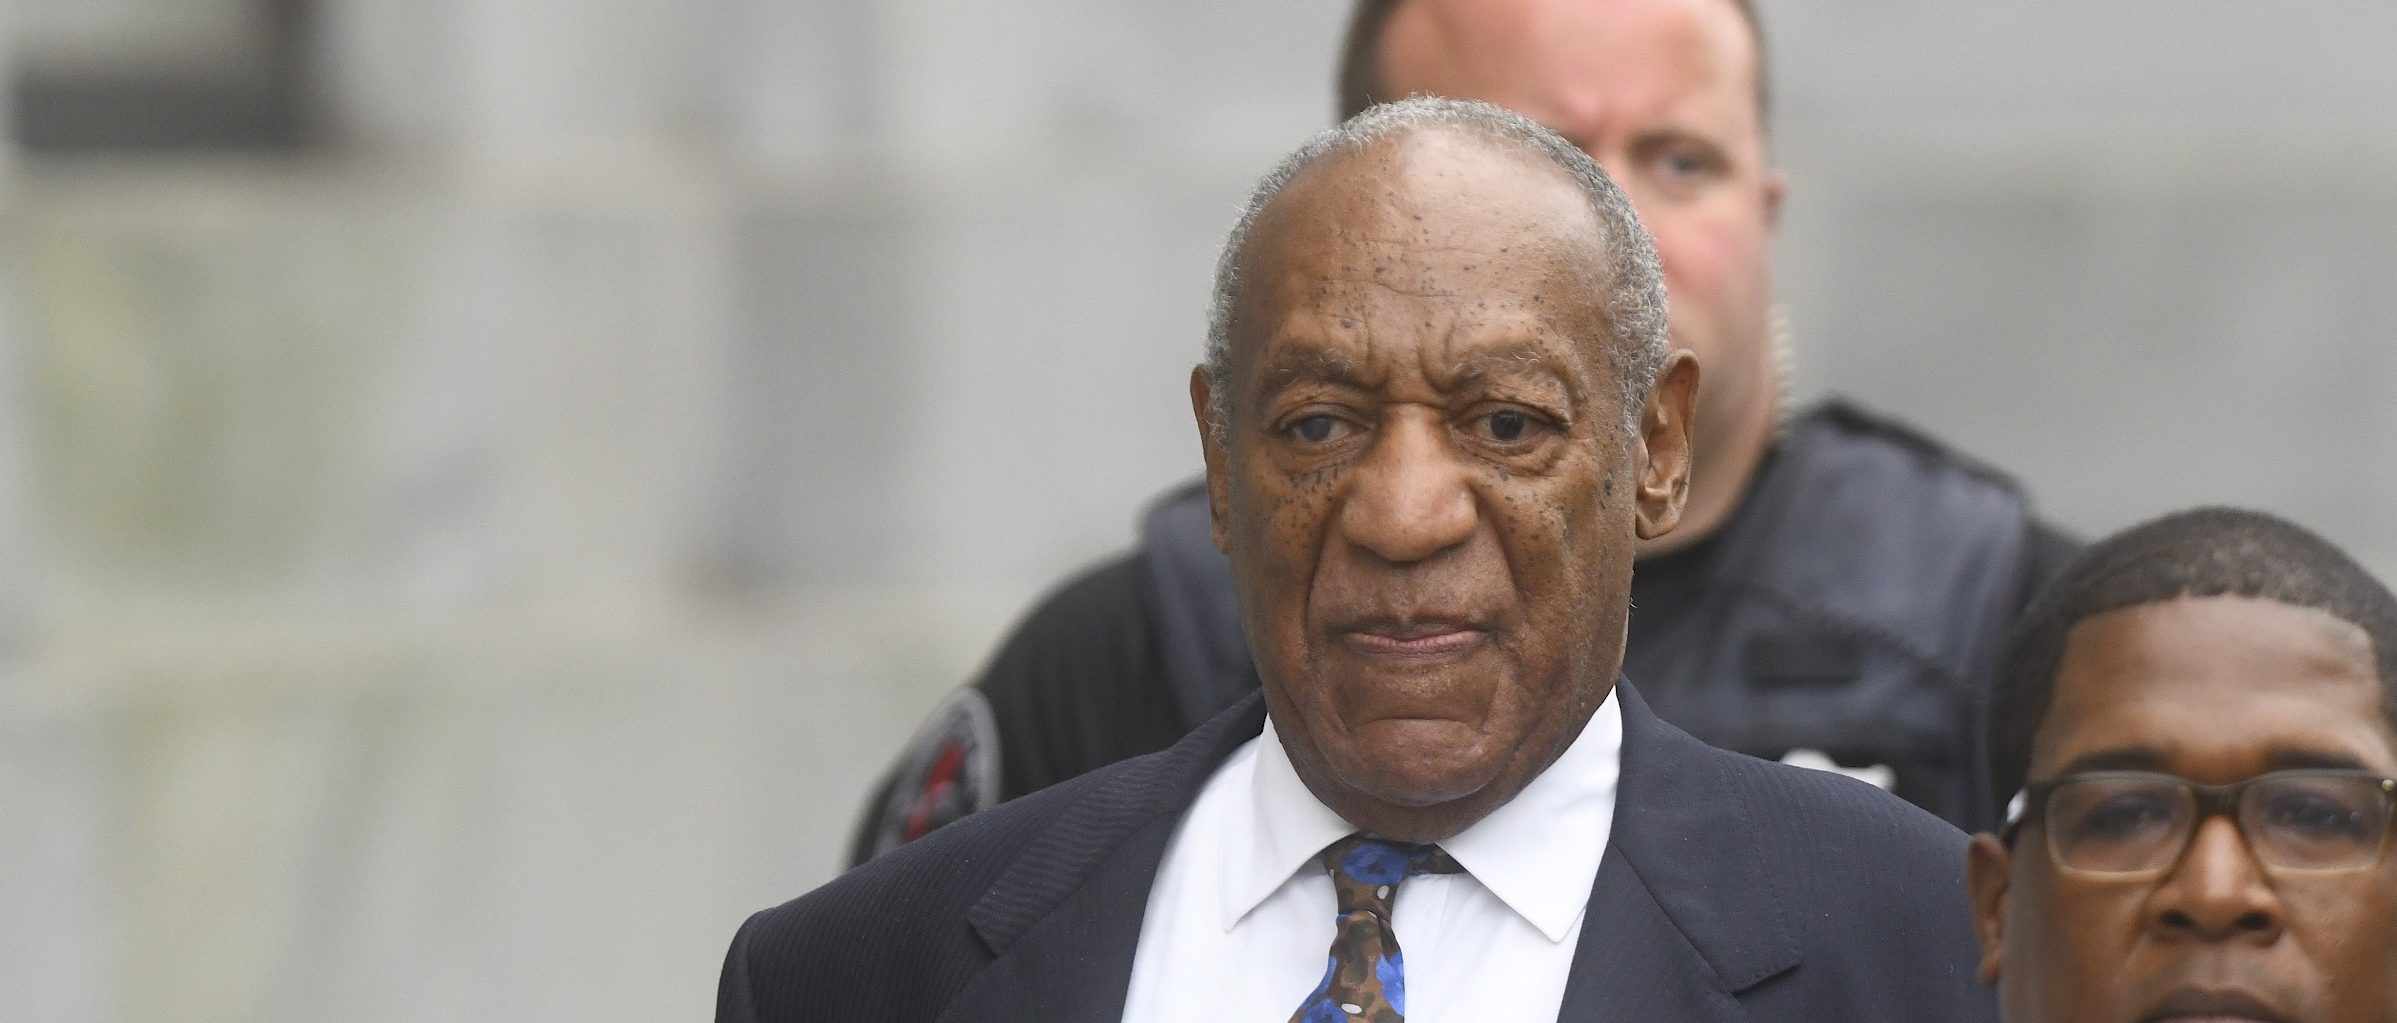 Bill Cosby Lawyers Trying To Get Sexual Assault Conviction Overturned